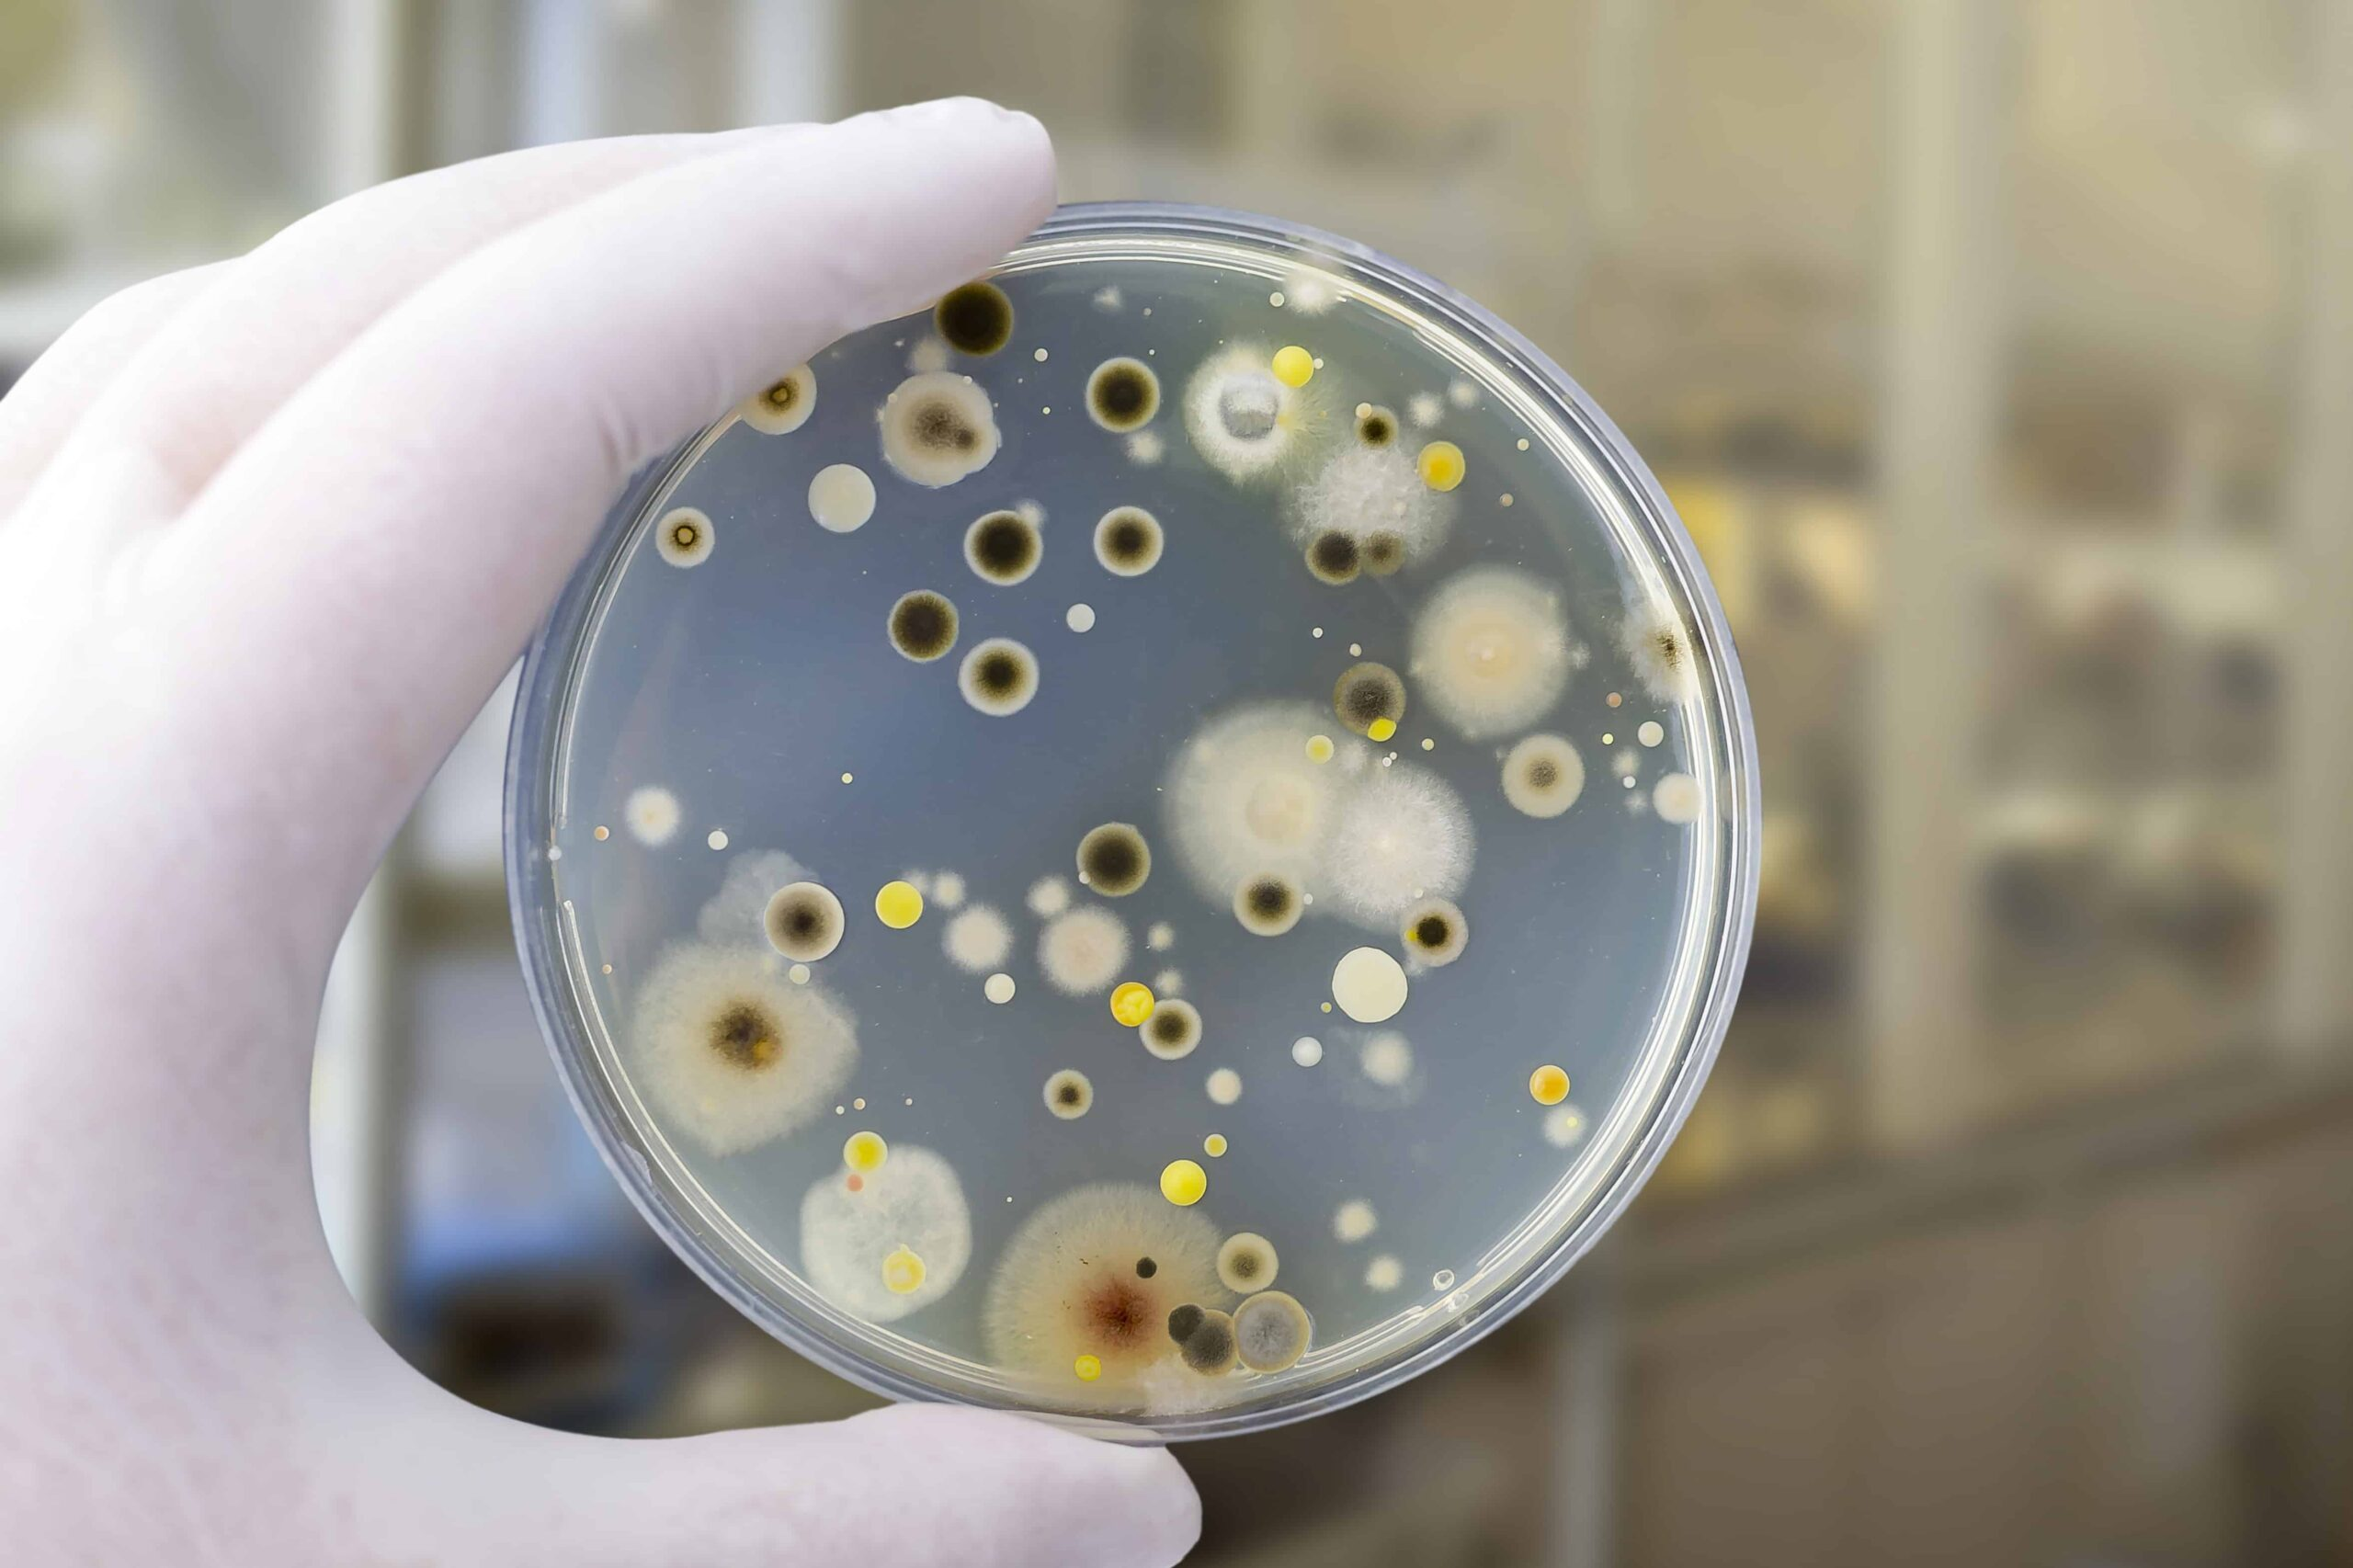 Canva-Colonies-of-different-bacteria-and-mold-fungi-grown-on-Petri-dish-with-nutrient-agar